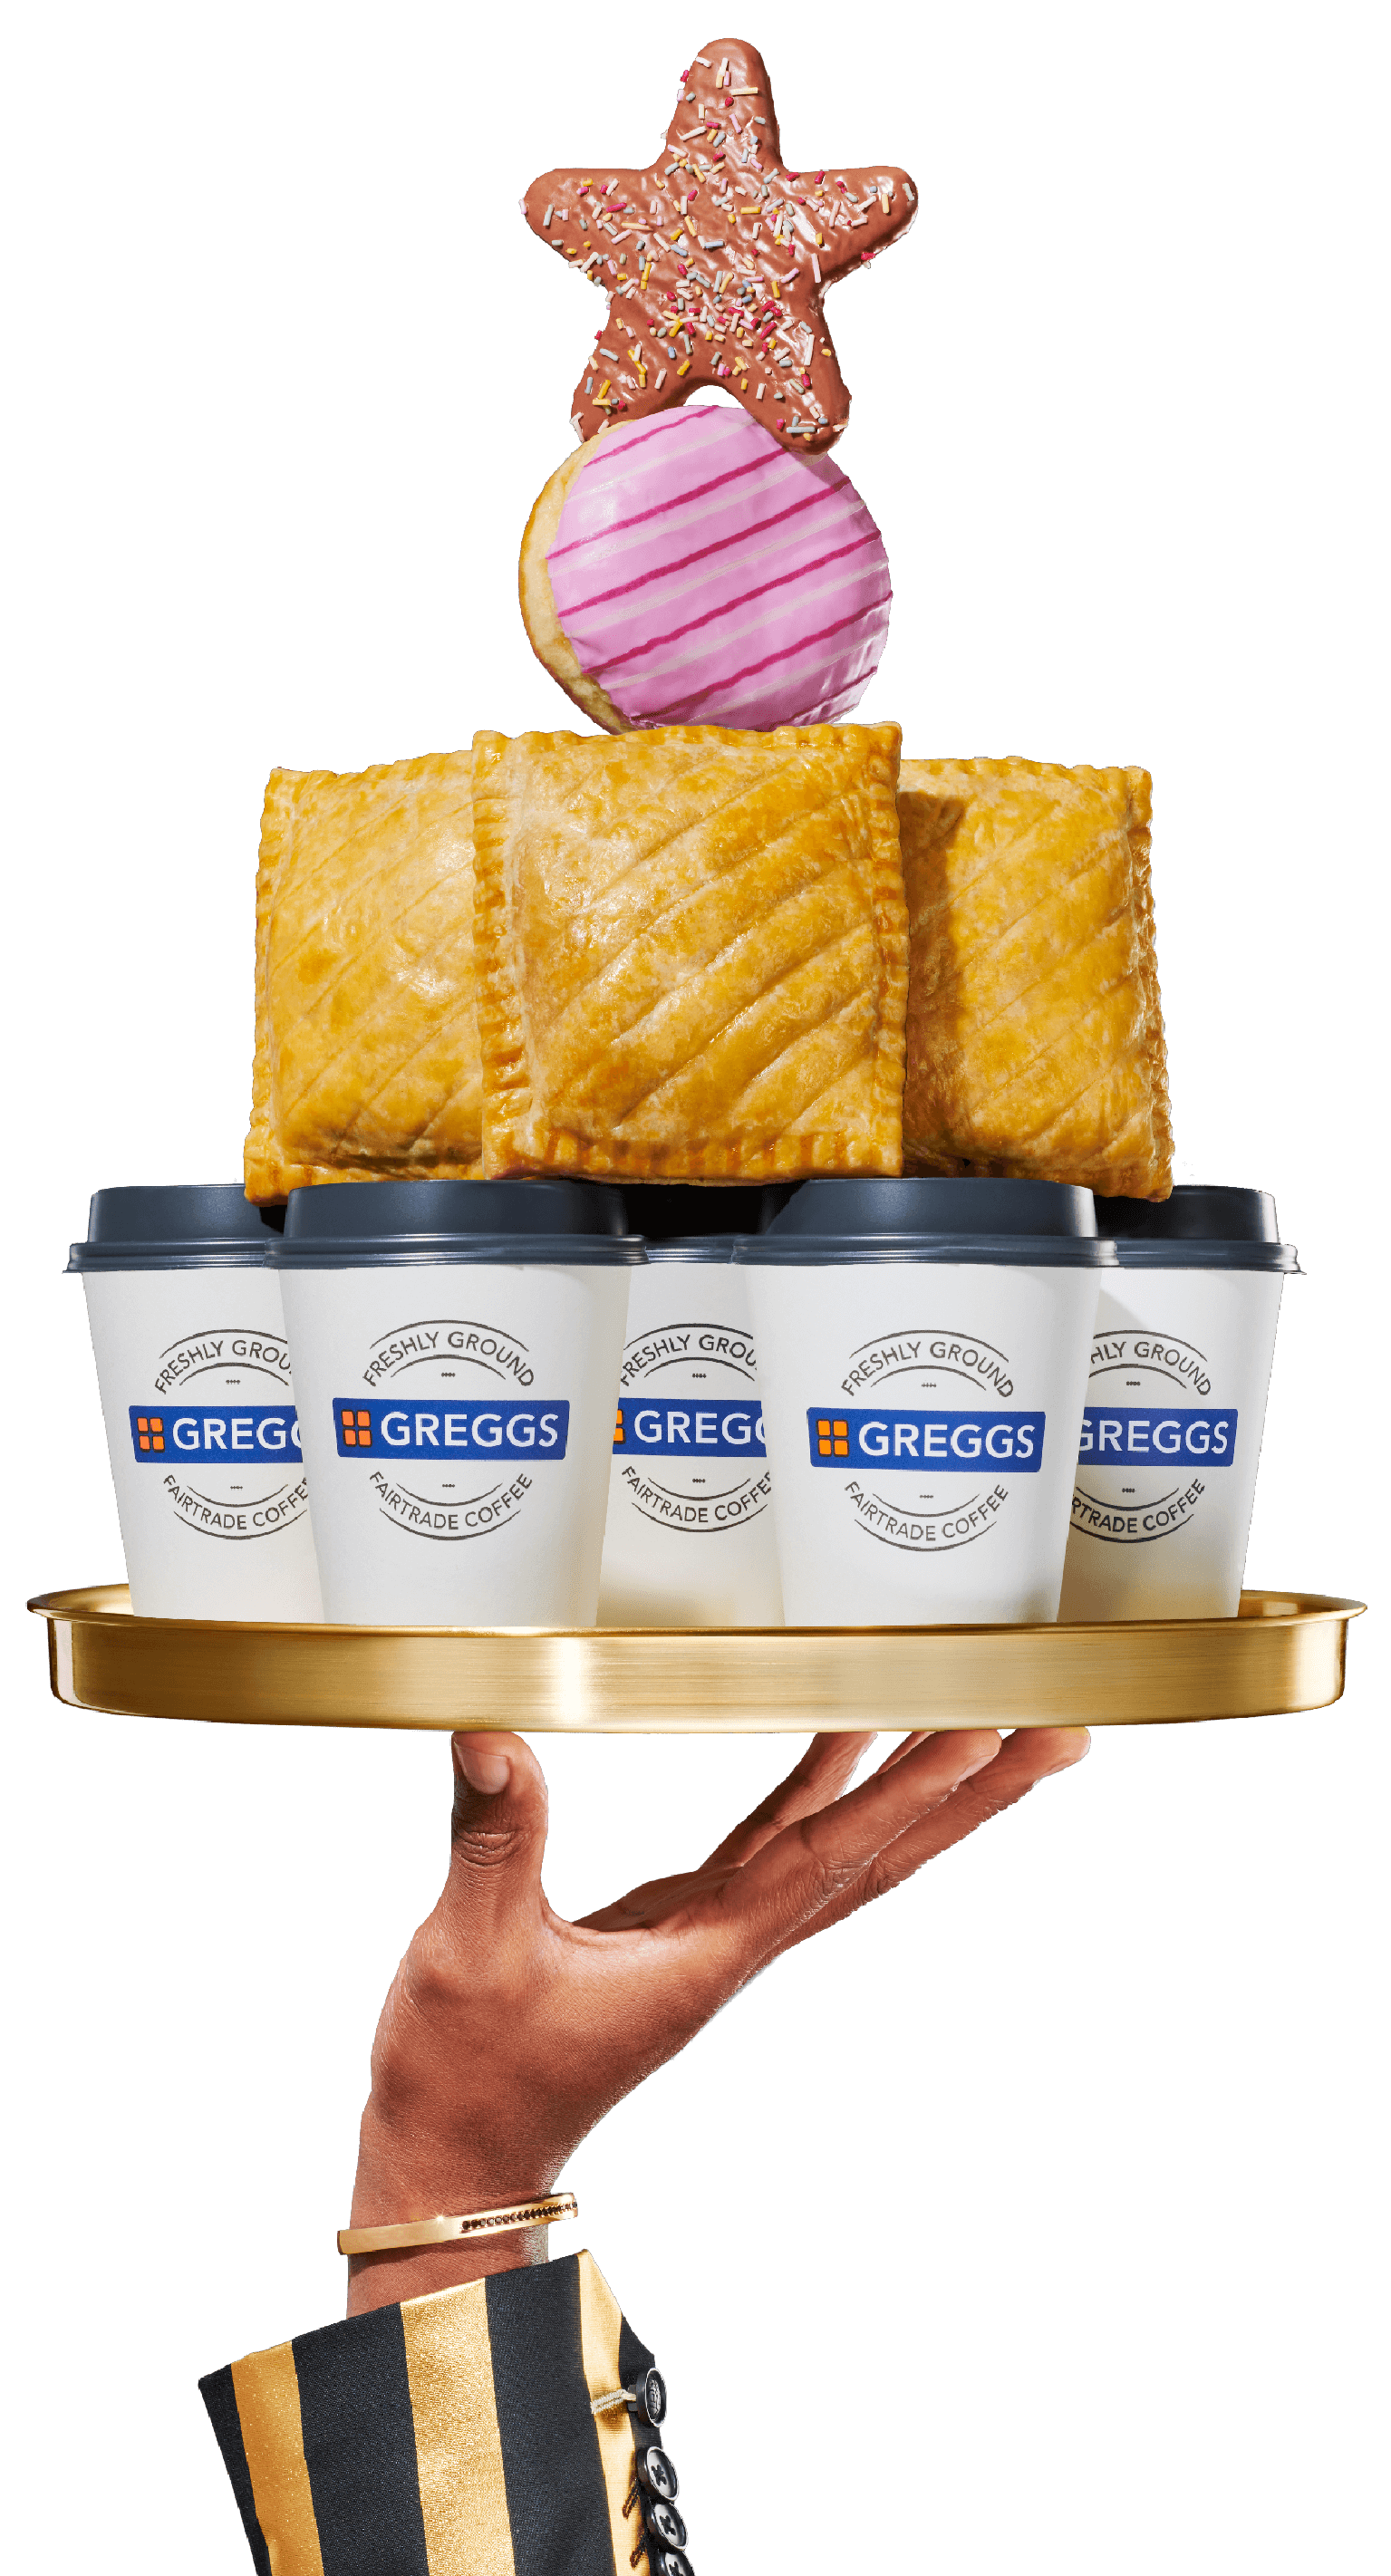 Hand holding tray stacked with Greggs hot drinks, savoury snacks and sweet treats